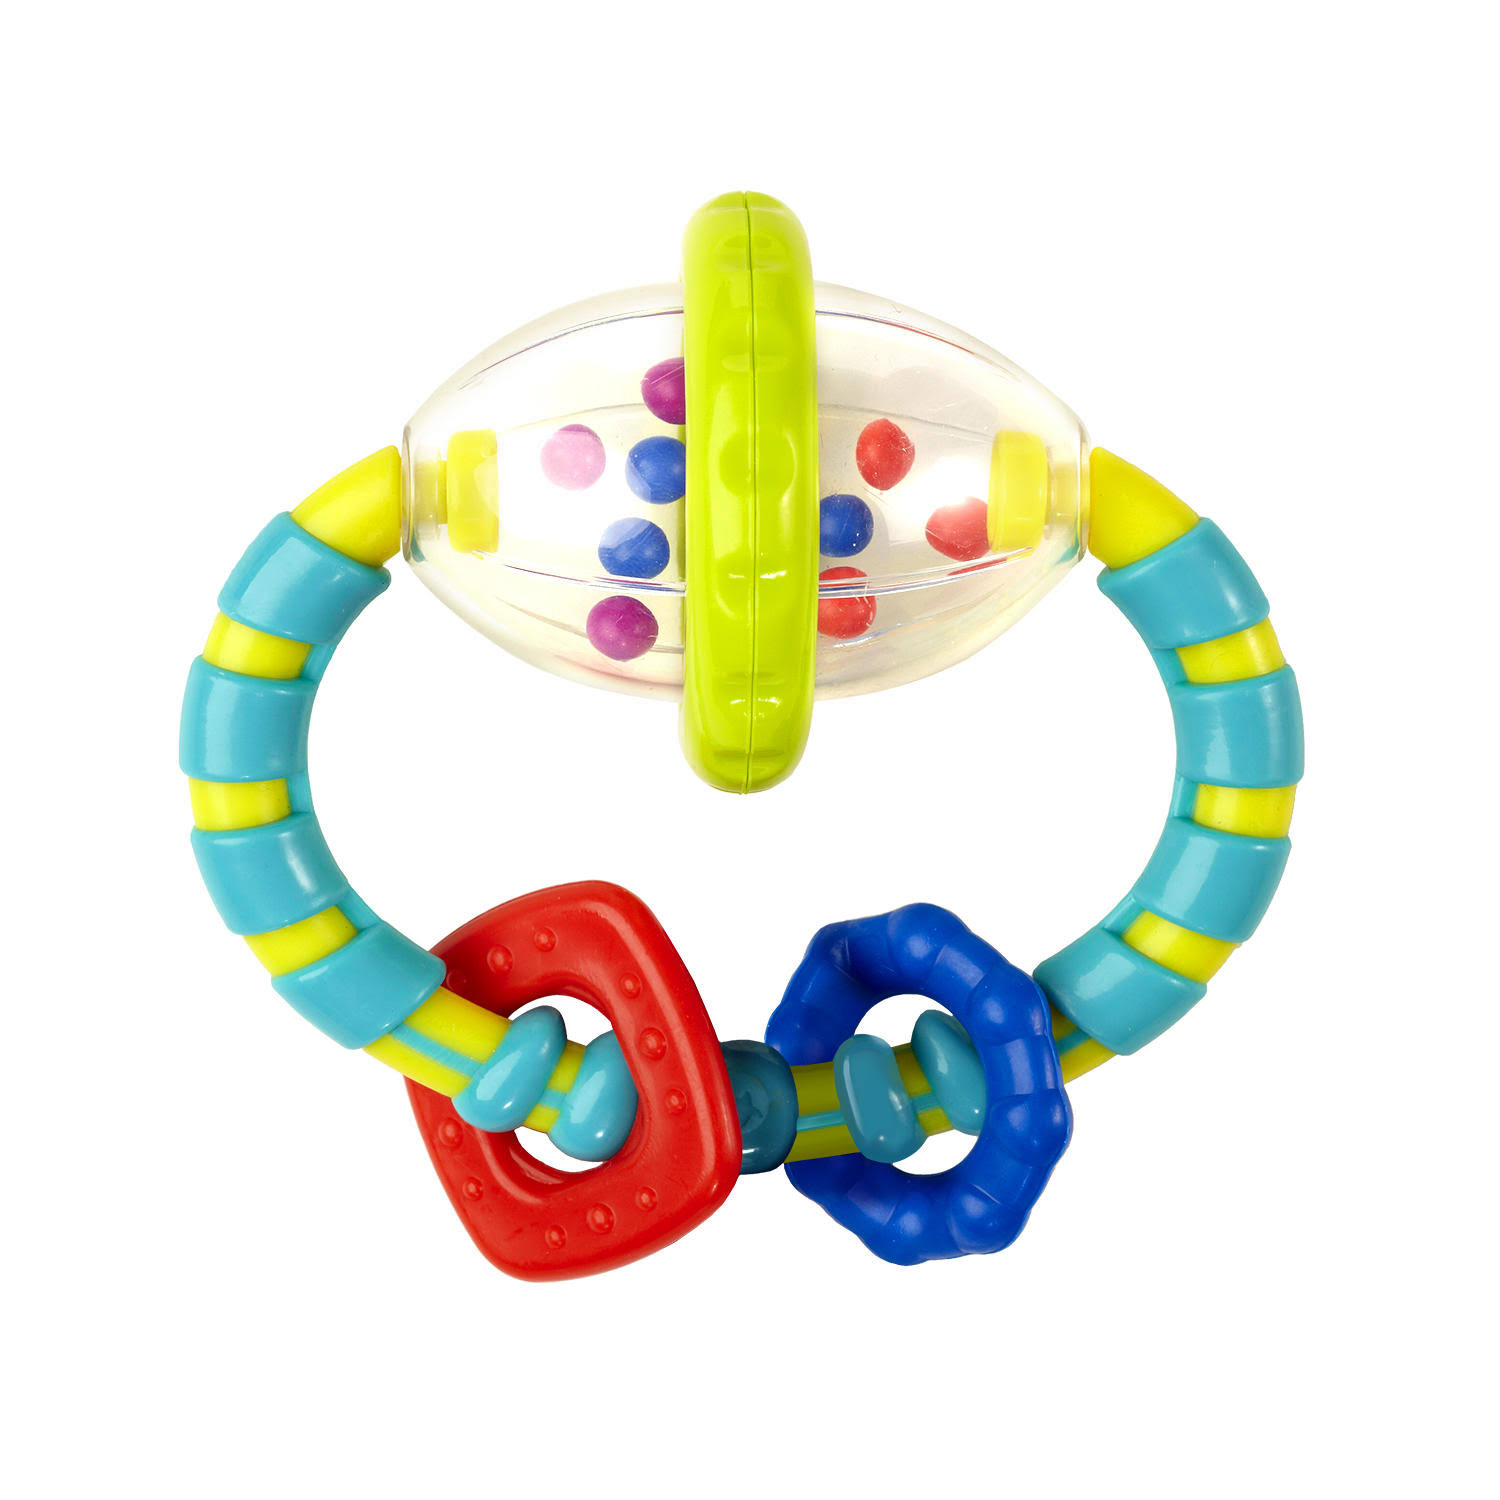 Bright Starts Grab and Spin Rattle Toy